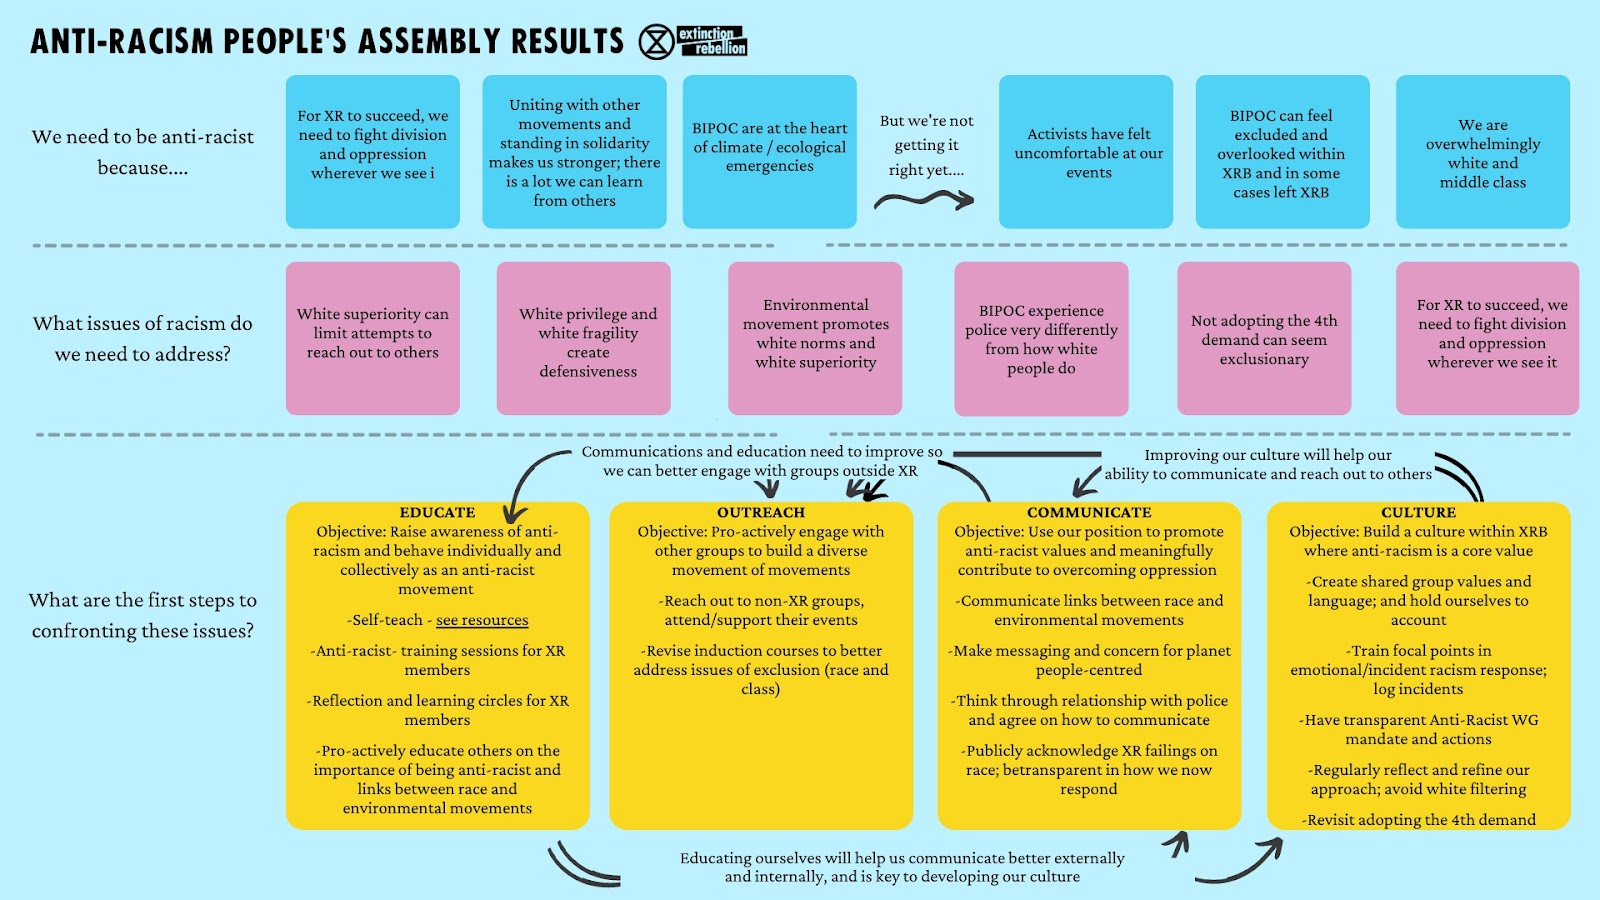 Anti-racism people's assembly results table